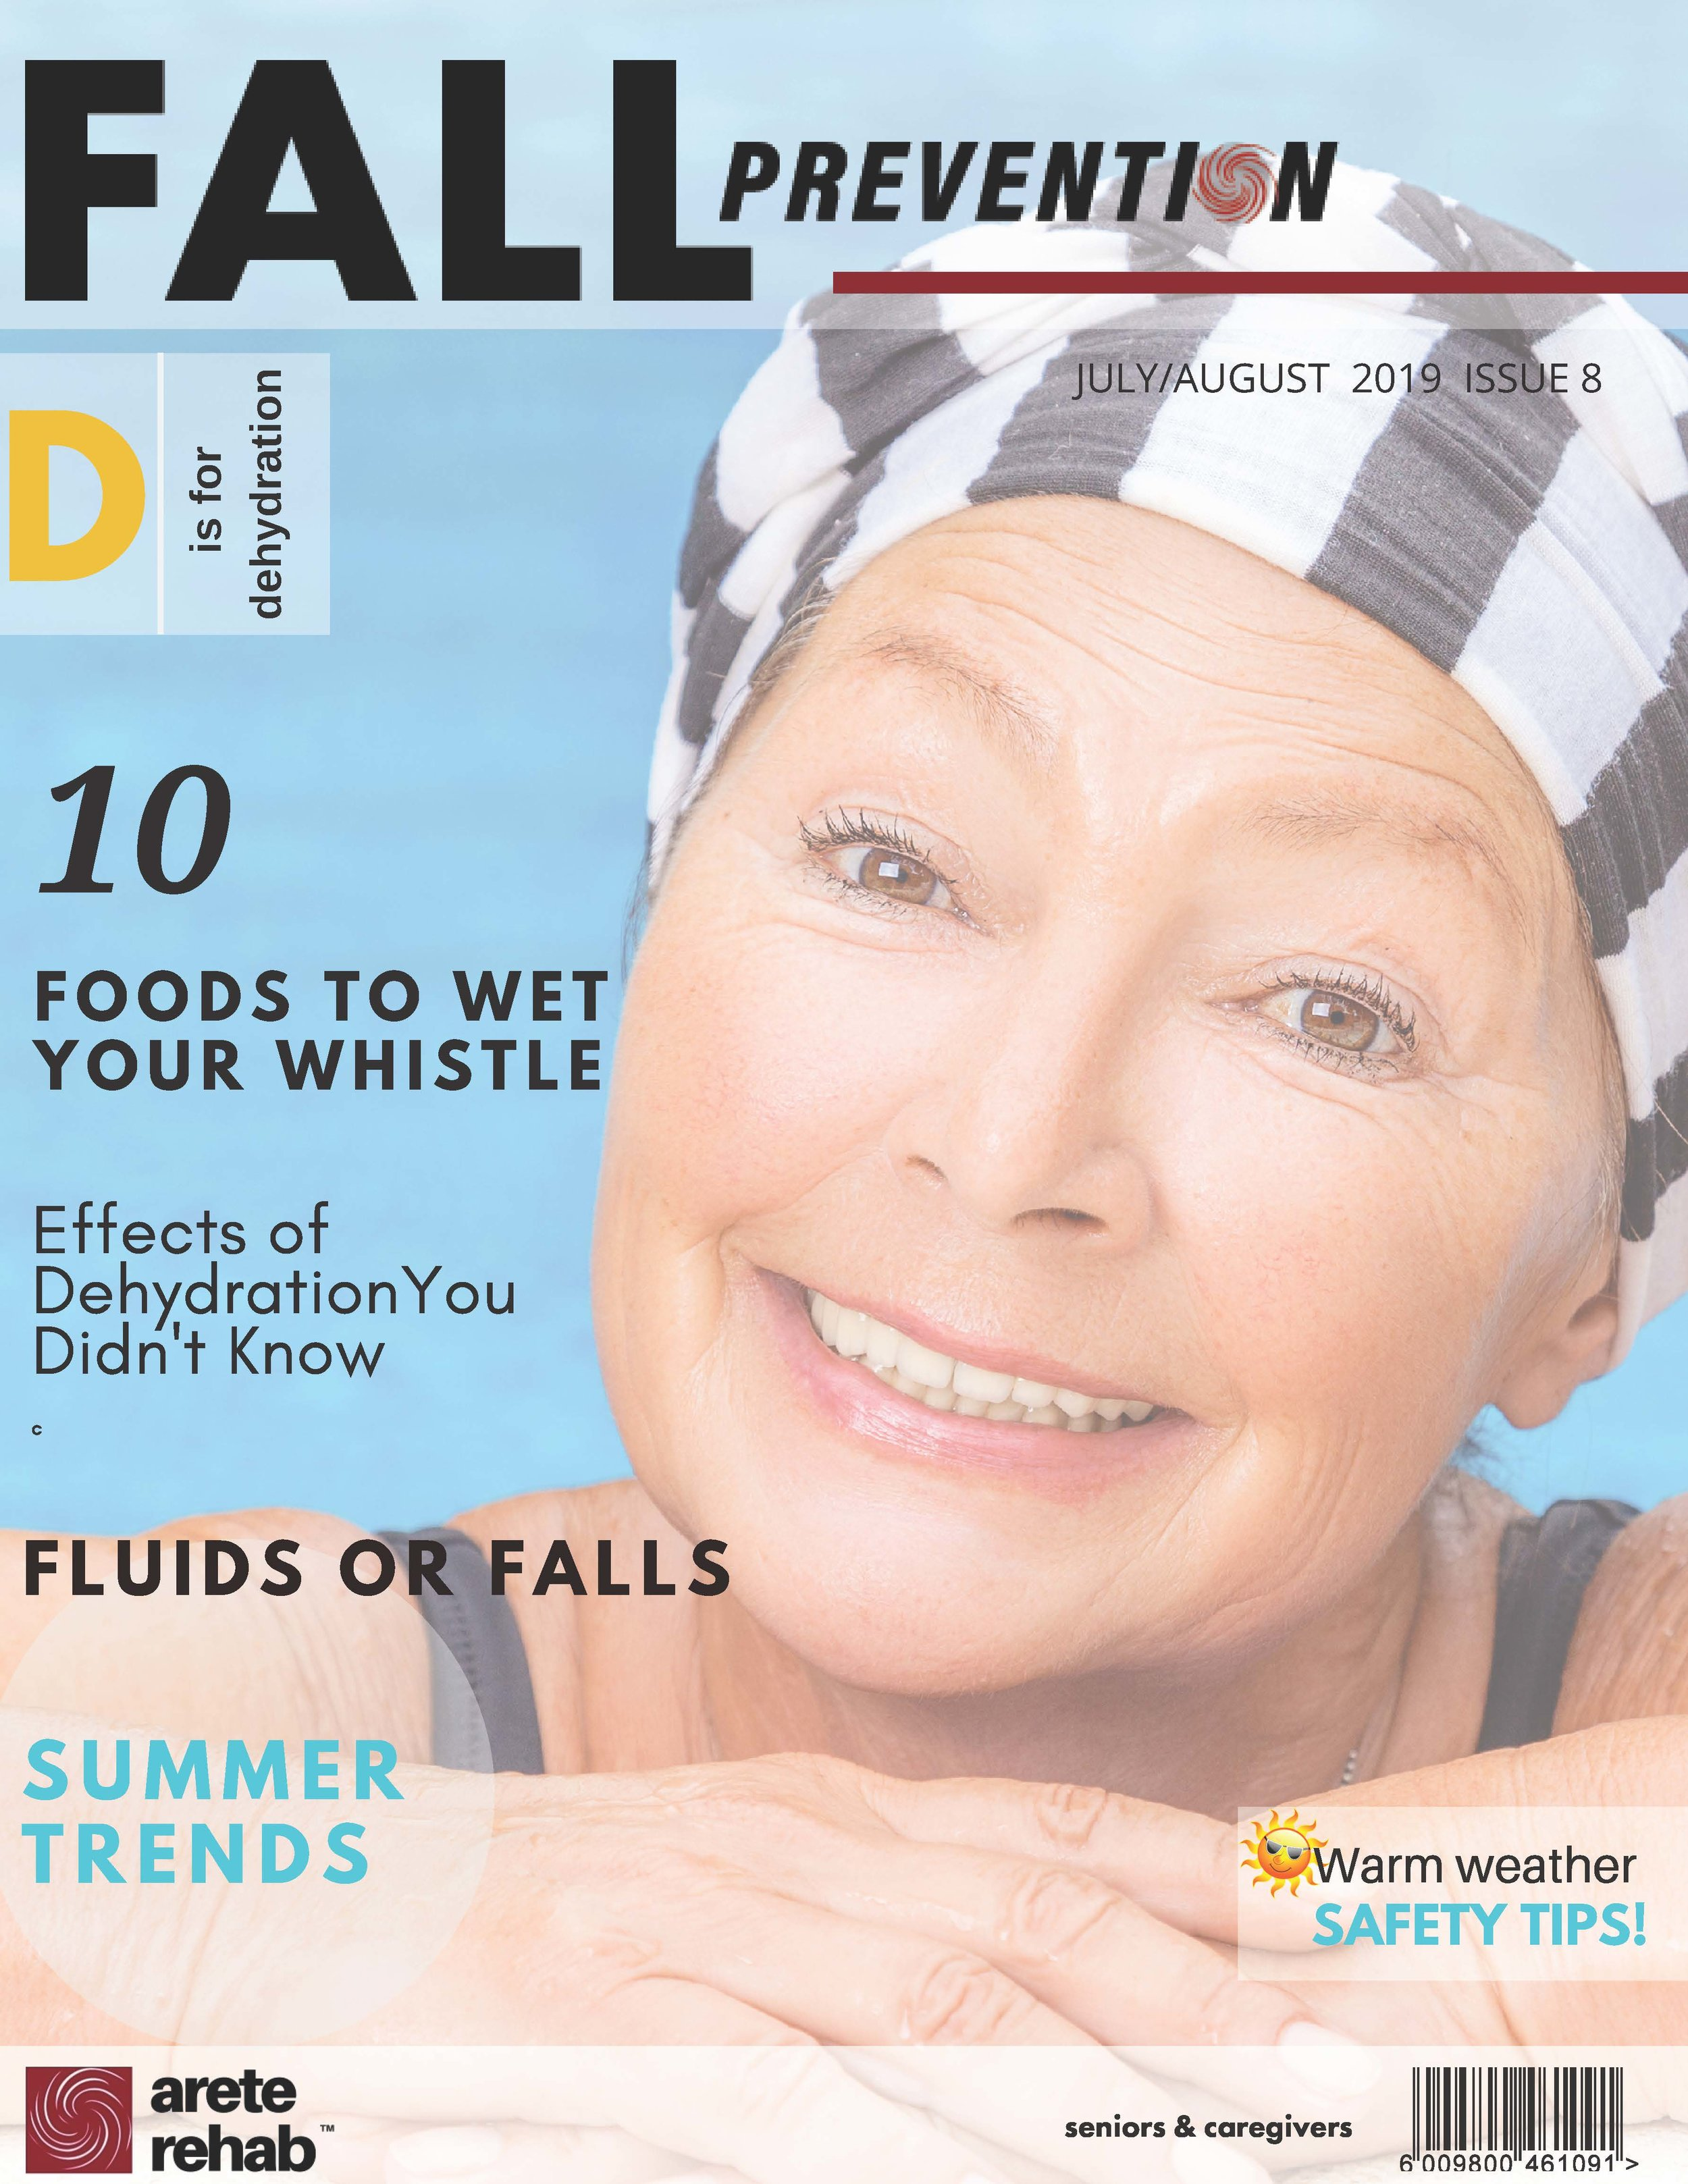 Fall Prevention Magazine July/August 2019 Issue 8